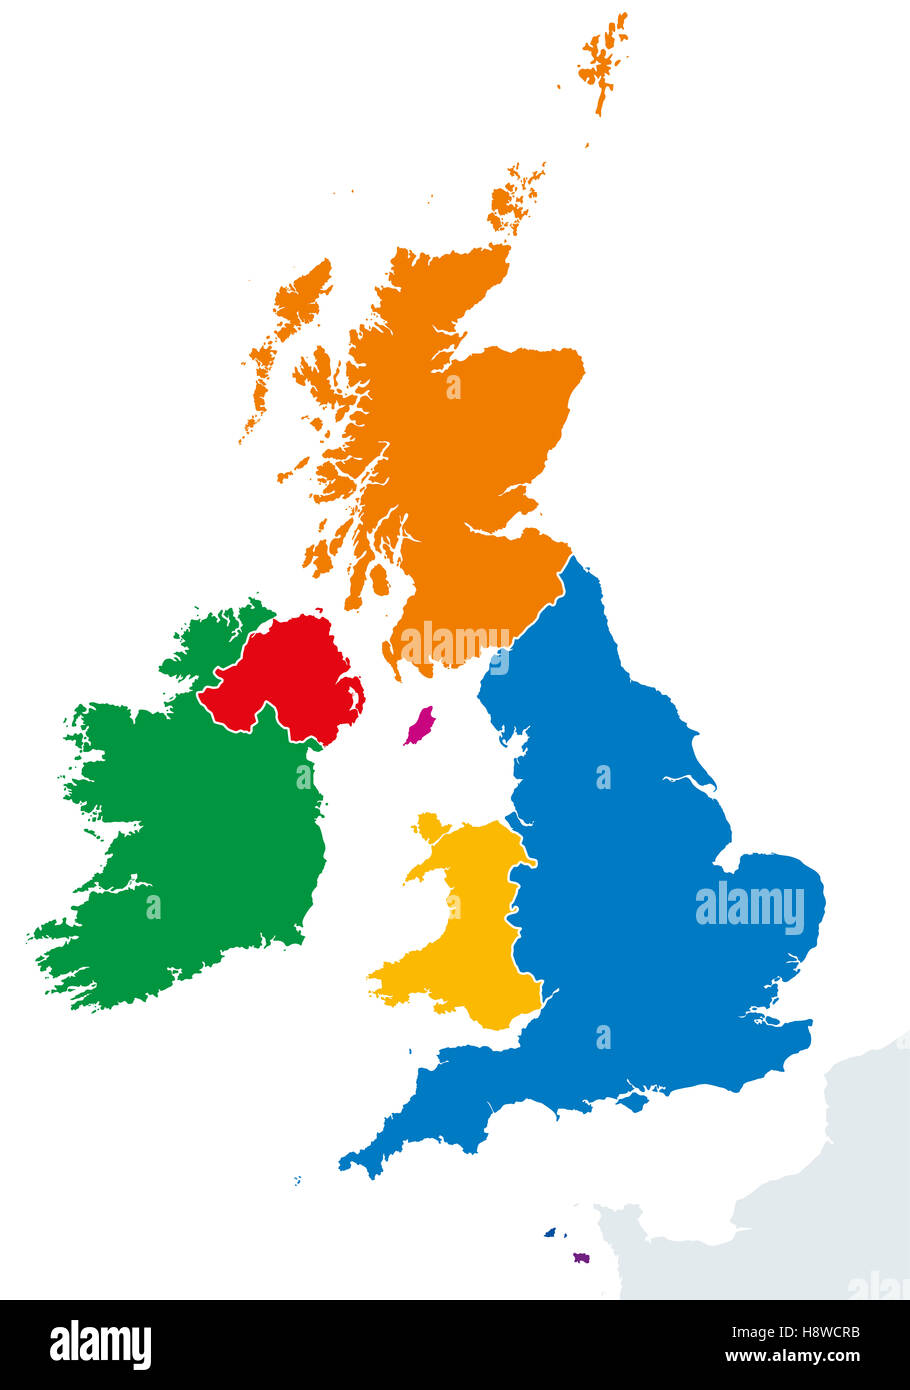 British isles countries silhouettes map ireland and united kingdom british isles countries silhouettes map ireland and united kingdom countries england scotland wales and northern ireland gumiabroncs